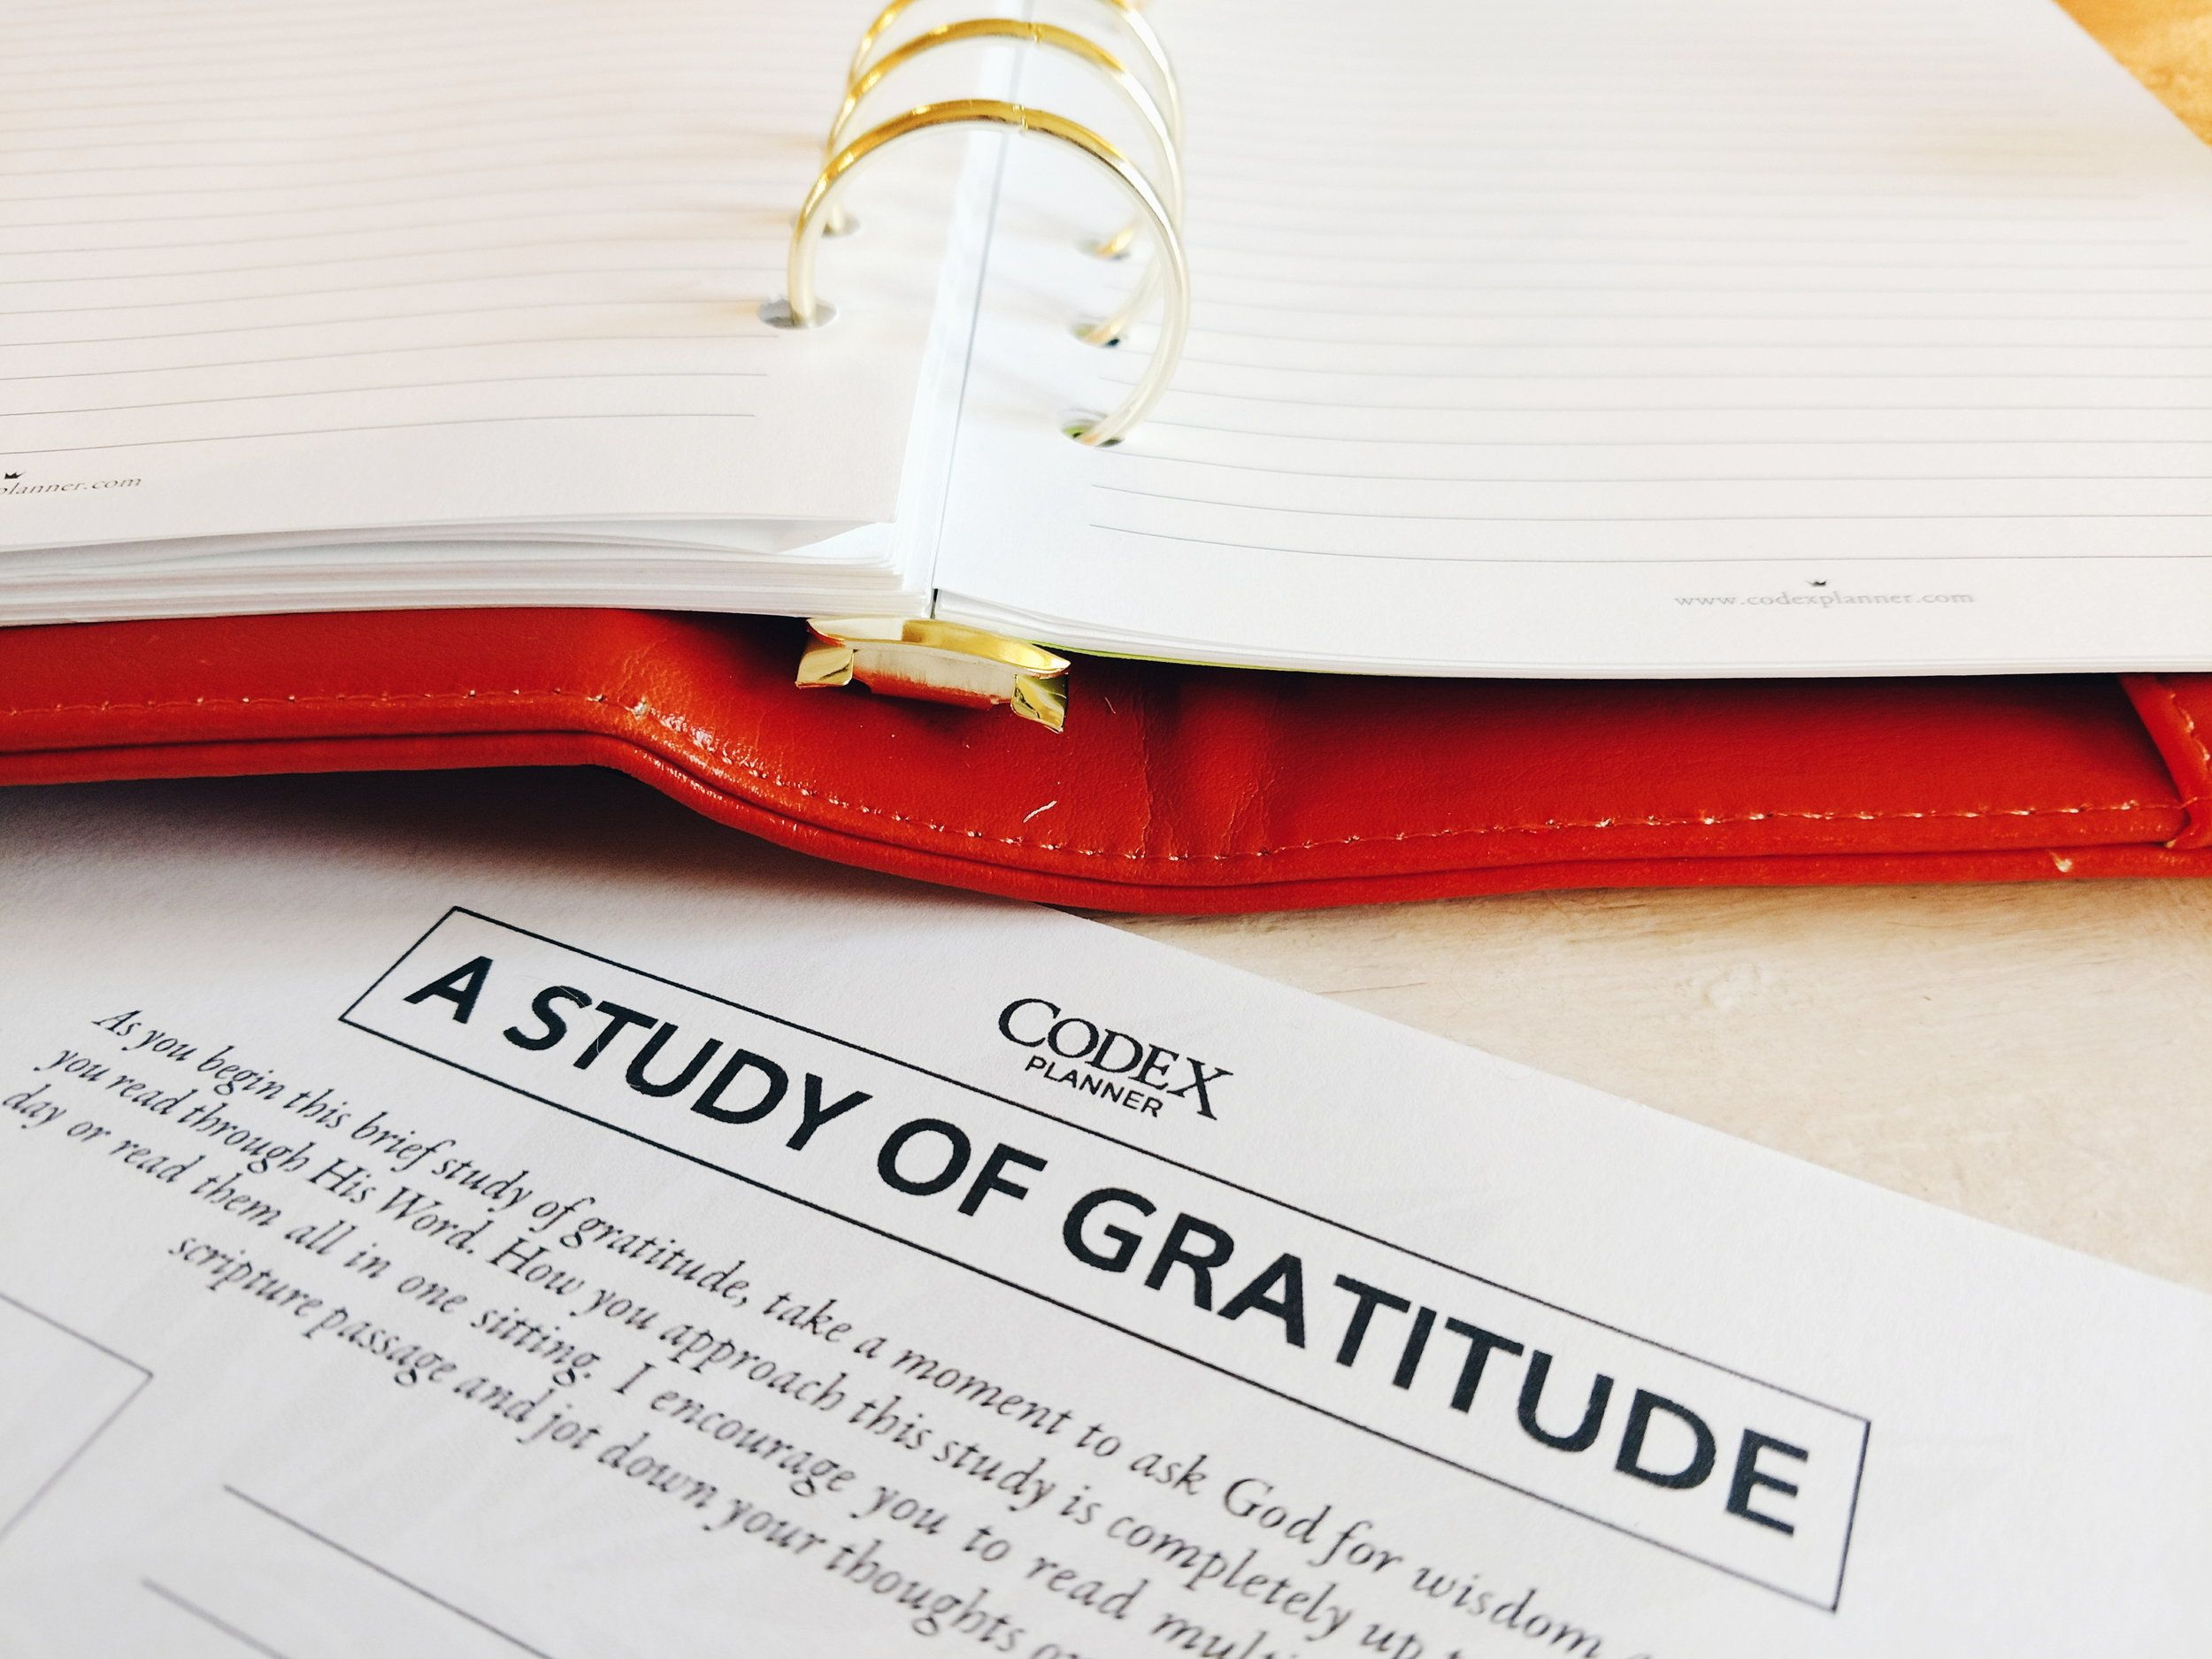 A Study Of Gratitude Worksheet Codexplanner Biblestudy